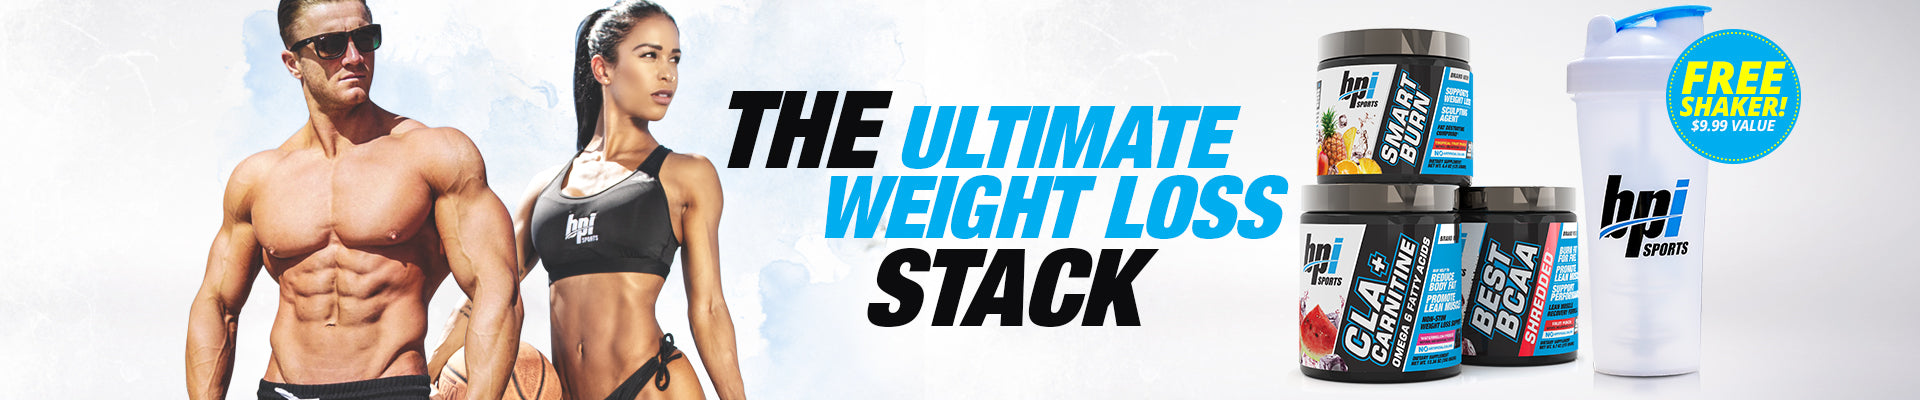 The Ultimate Weight Loss Stack Promo